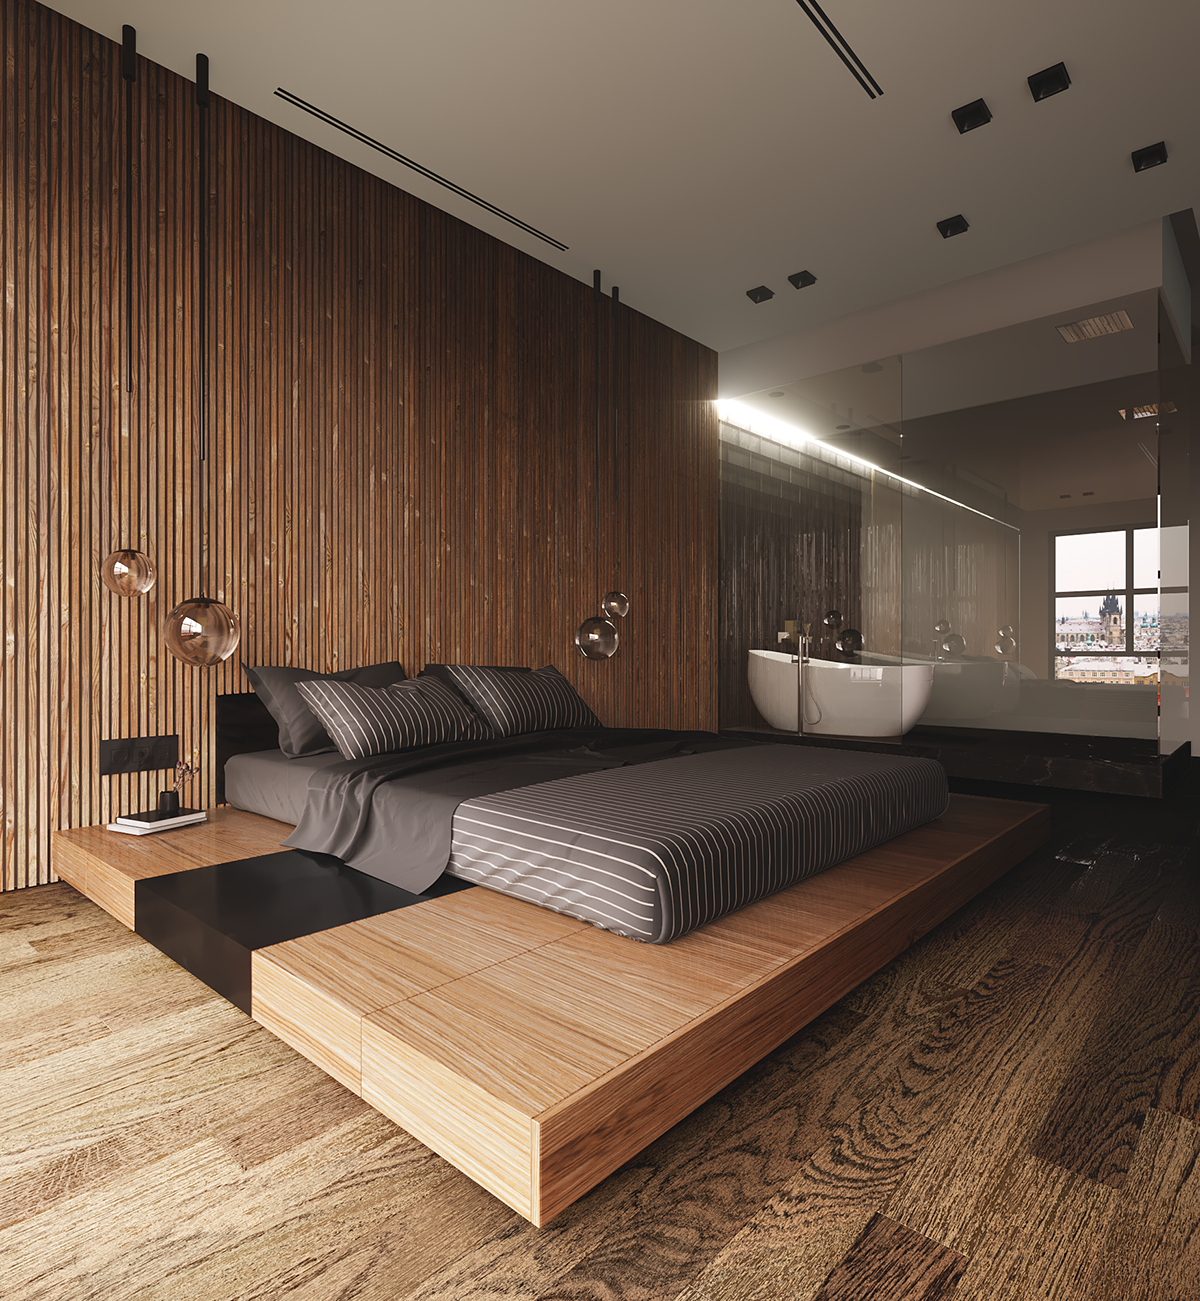 """Visualization project by reference """"forms arhitects"""" on ... on Bedroom Reference  id=26688"""